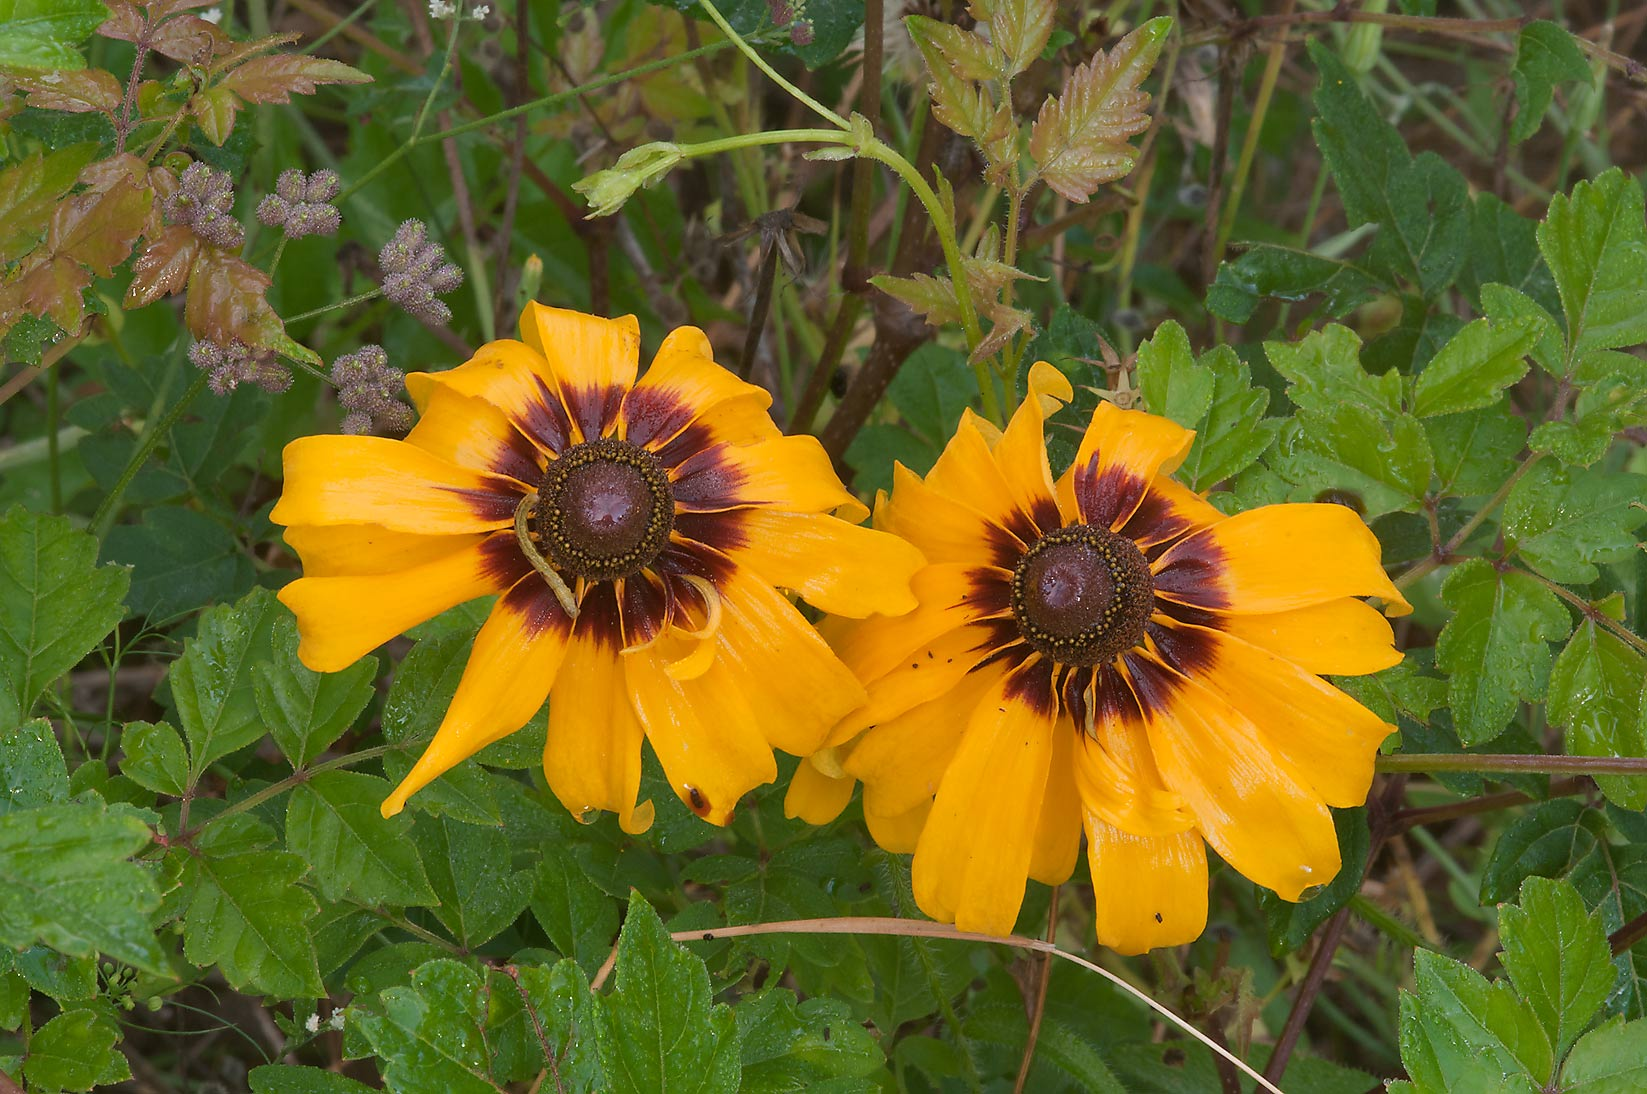 Mature black eyed susan flowers in Lick Creek Park. College Station, Texas